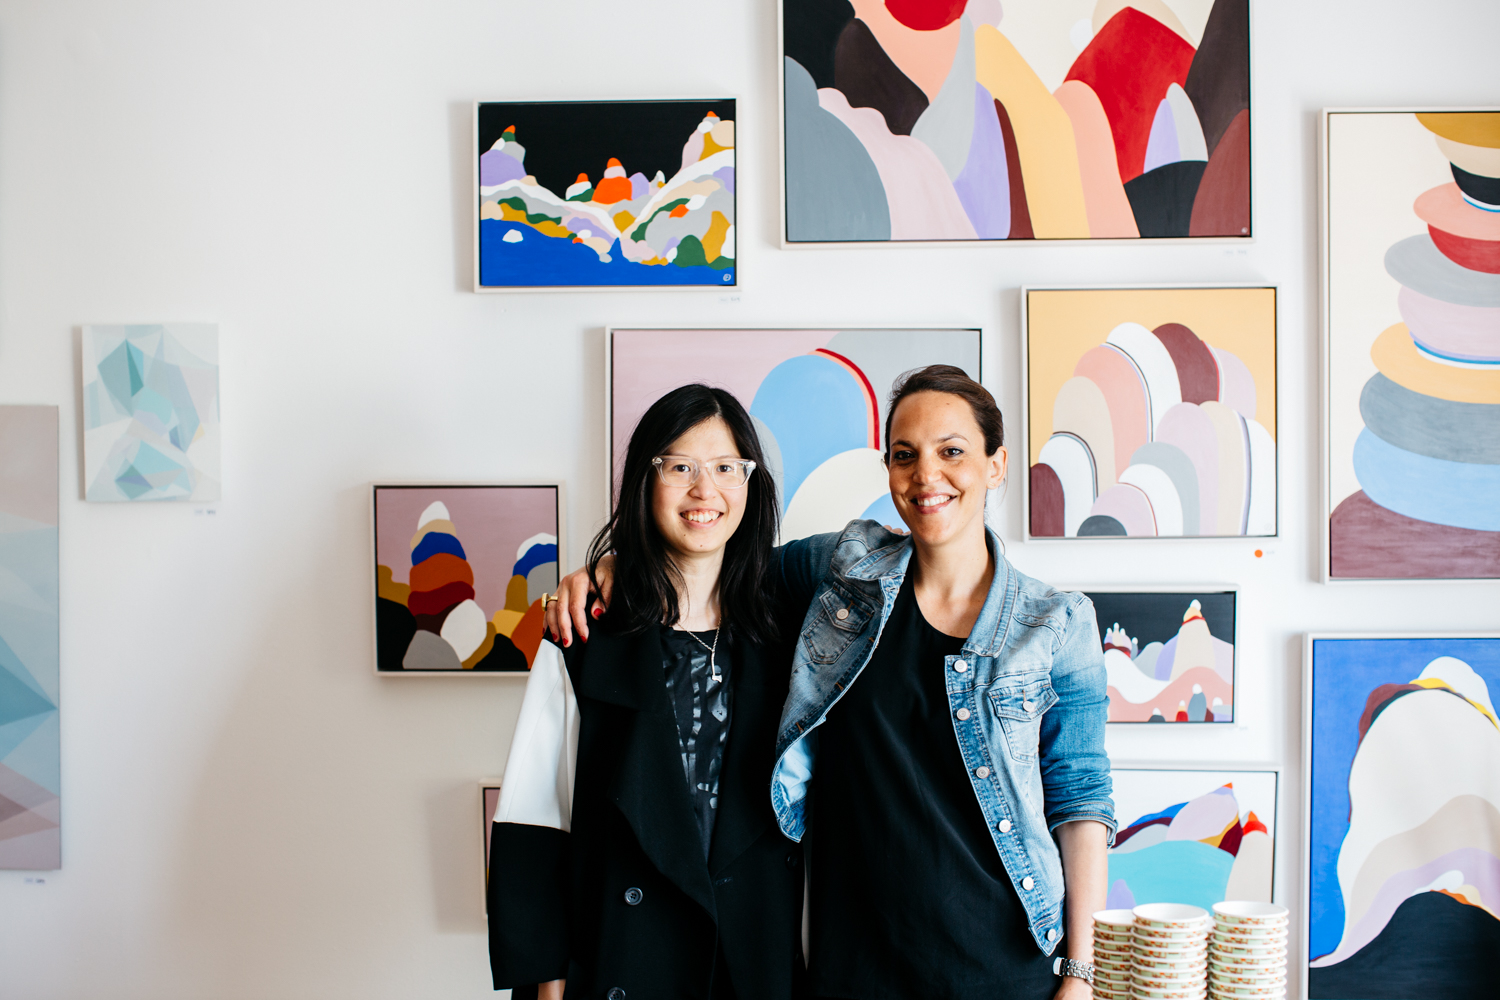 Amber Creswell Bell with Evi O at her recent exhibition.